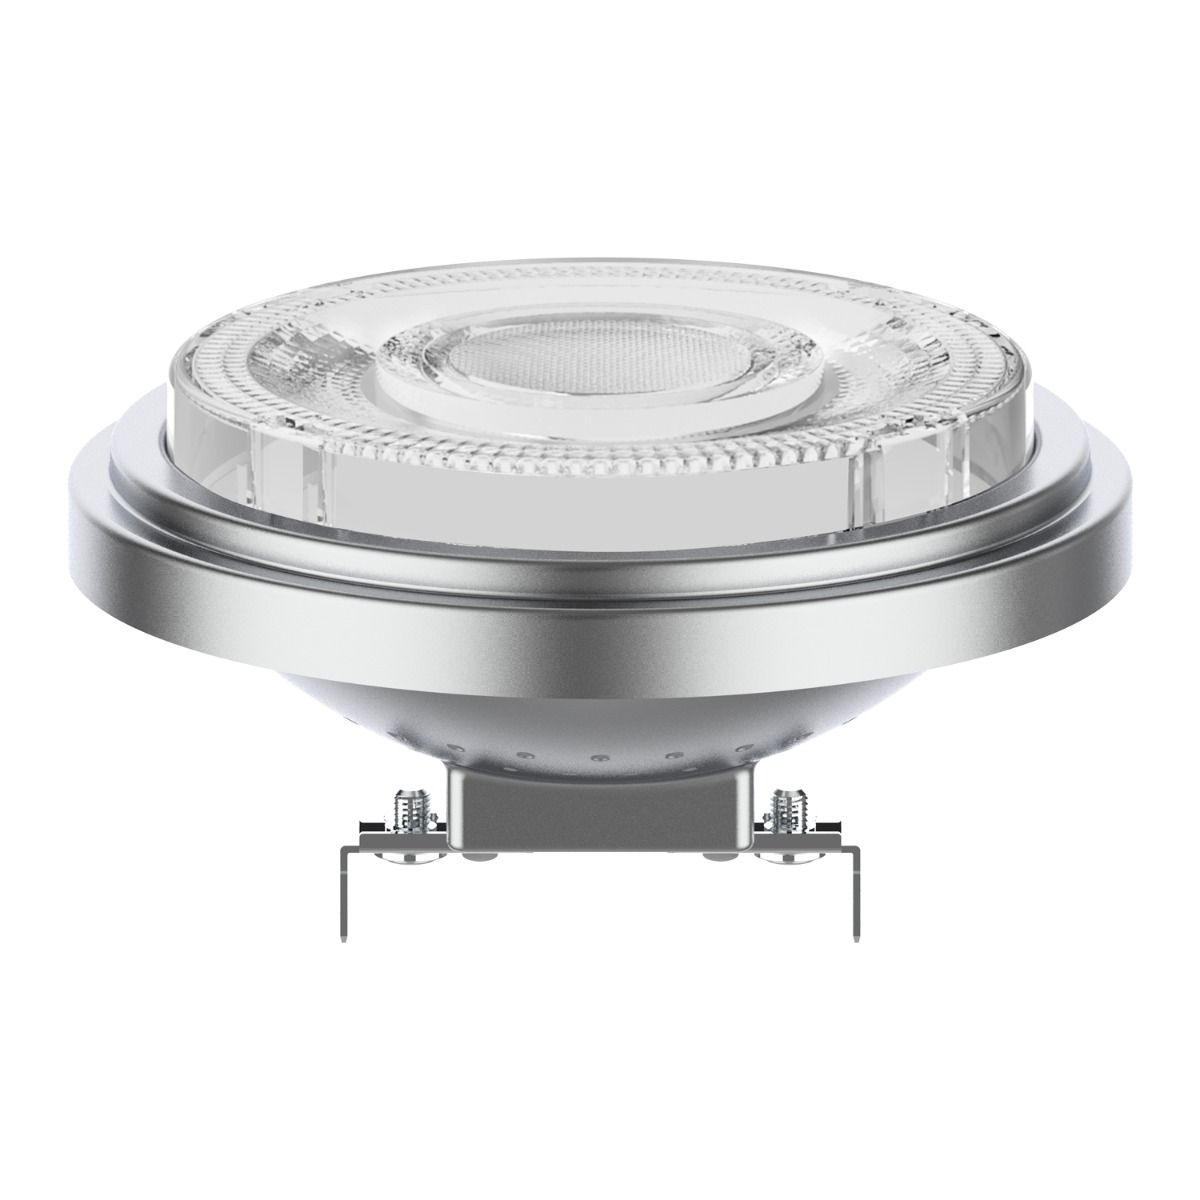 Noxion Lucent LED Spot AR111 G53 12V 7.3W 918-927 24D | Dim toWarm - Highest Colour Rendering - Replacer for 50W